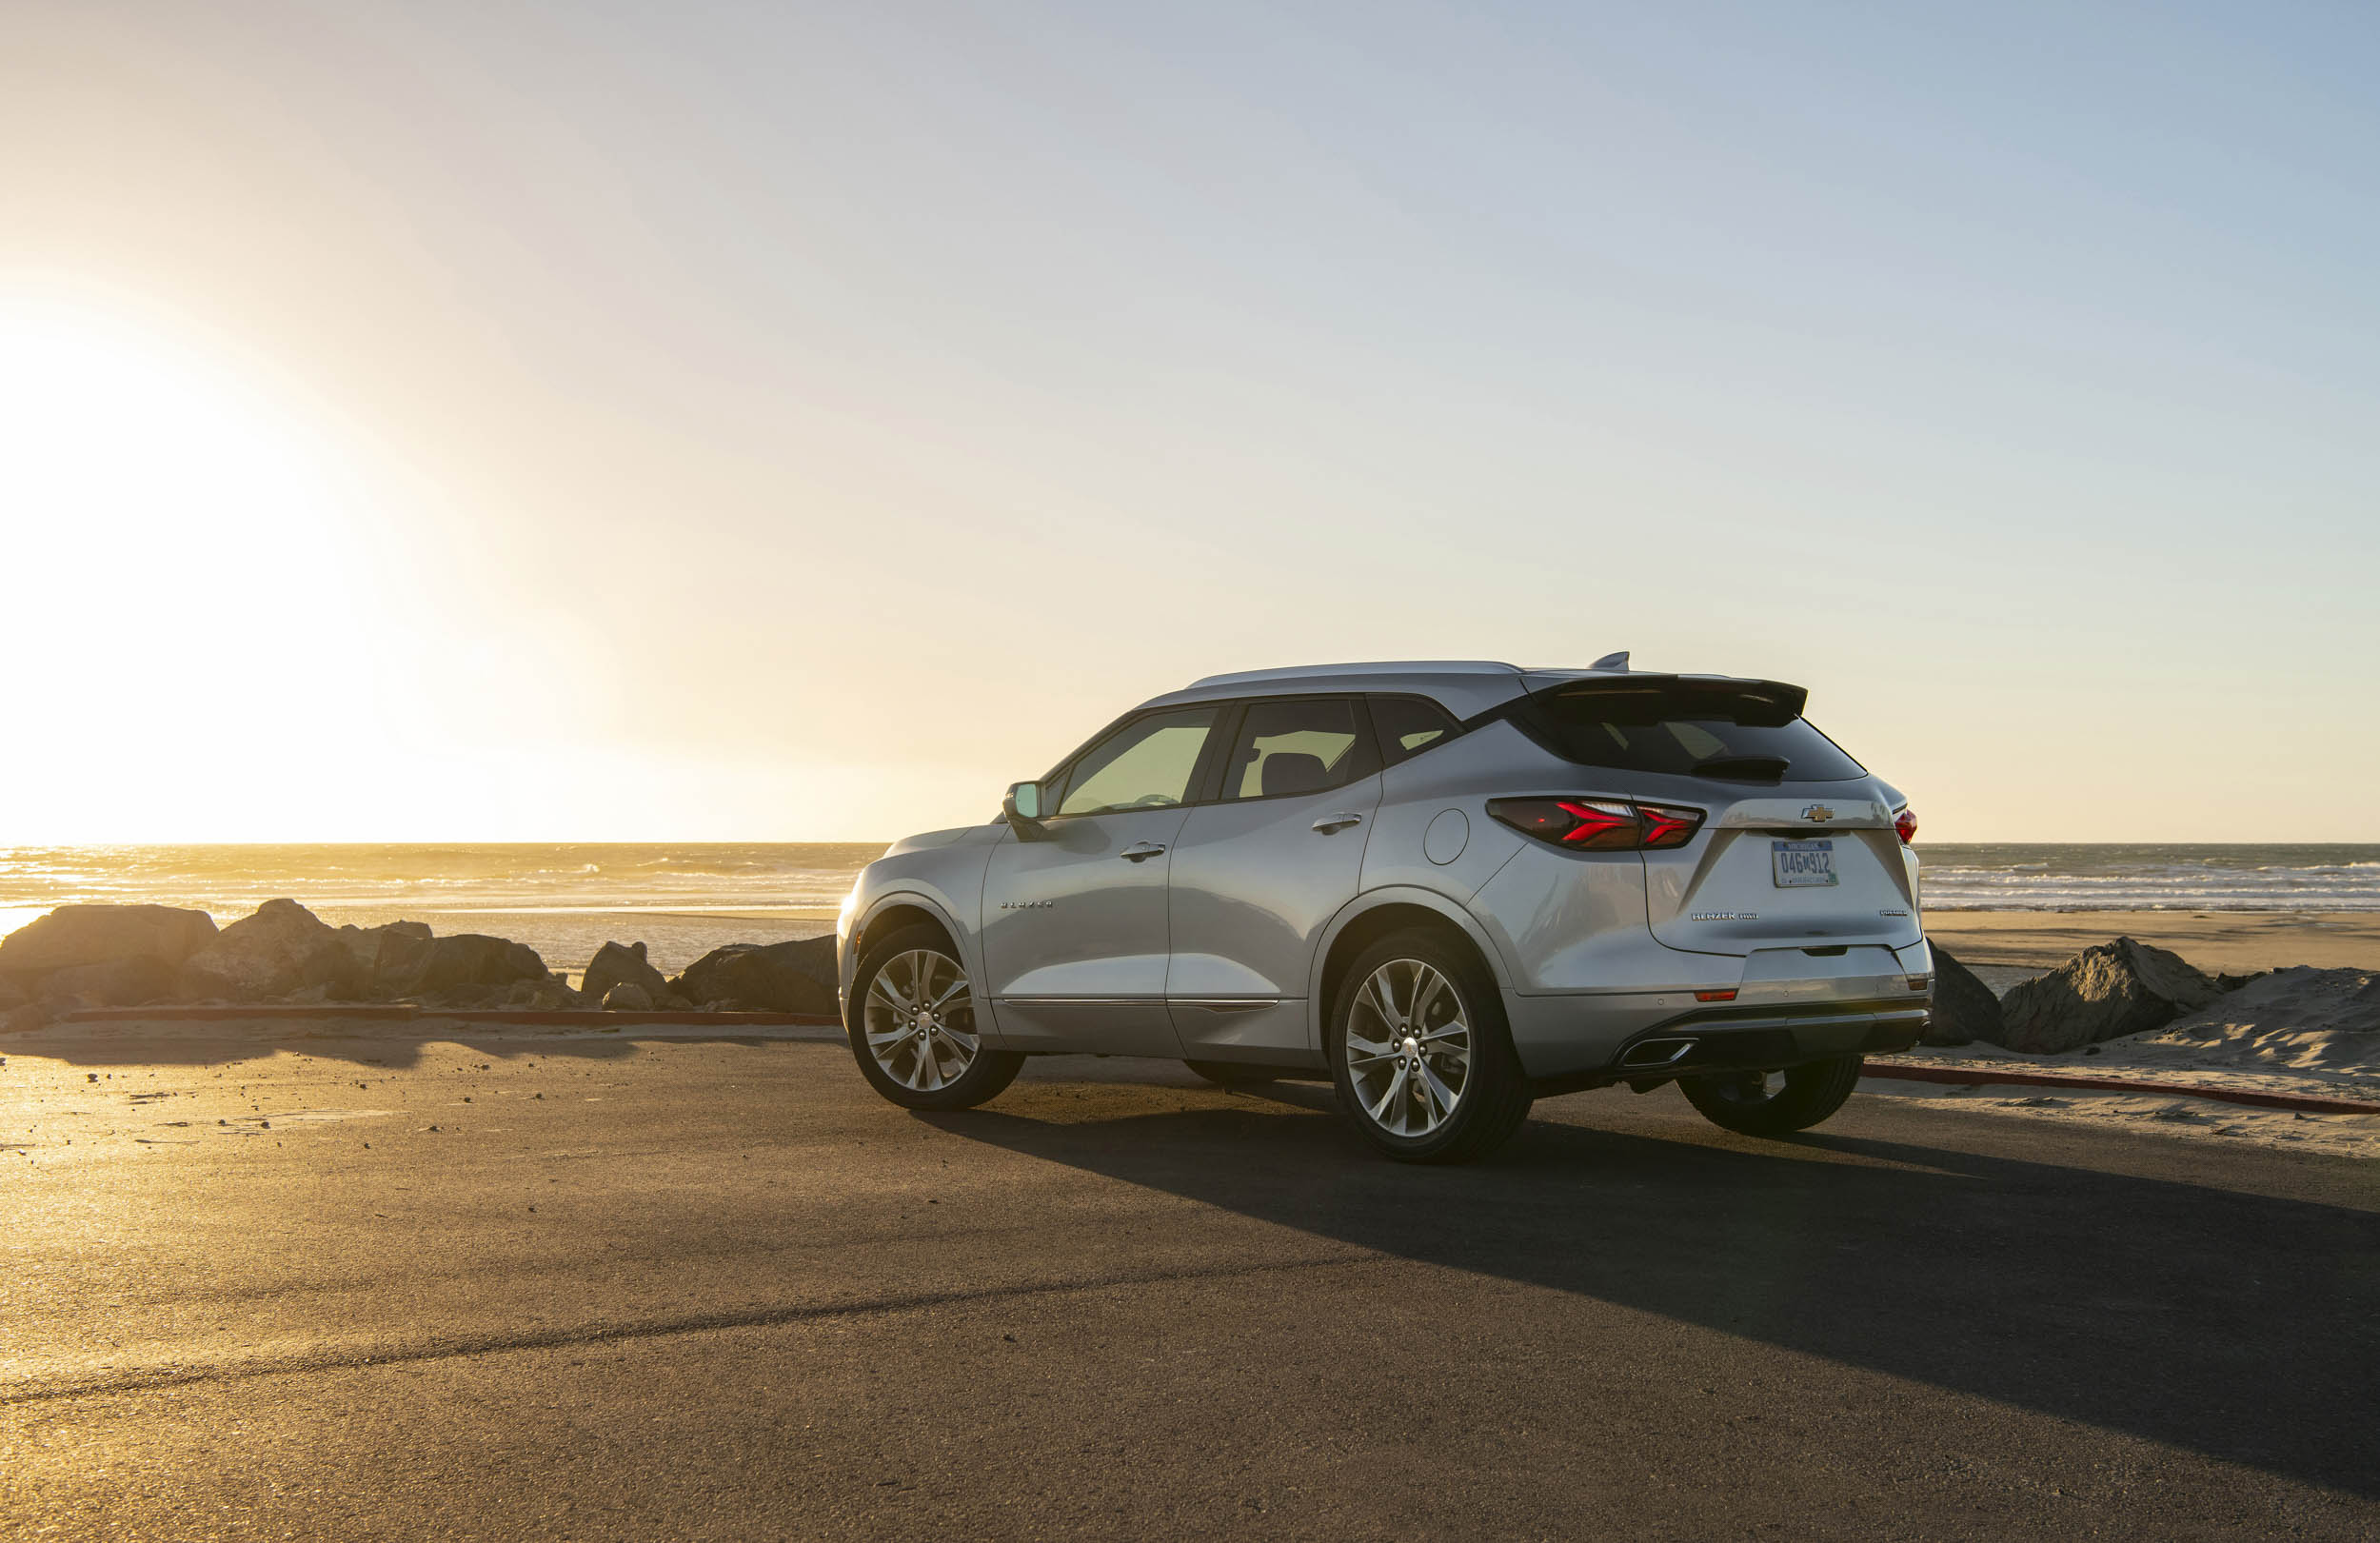 Silver 2019 Chevrolet Blazer rear 3/4 at sunset